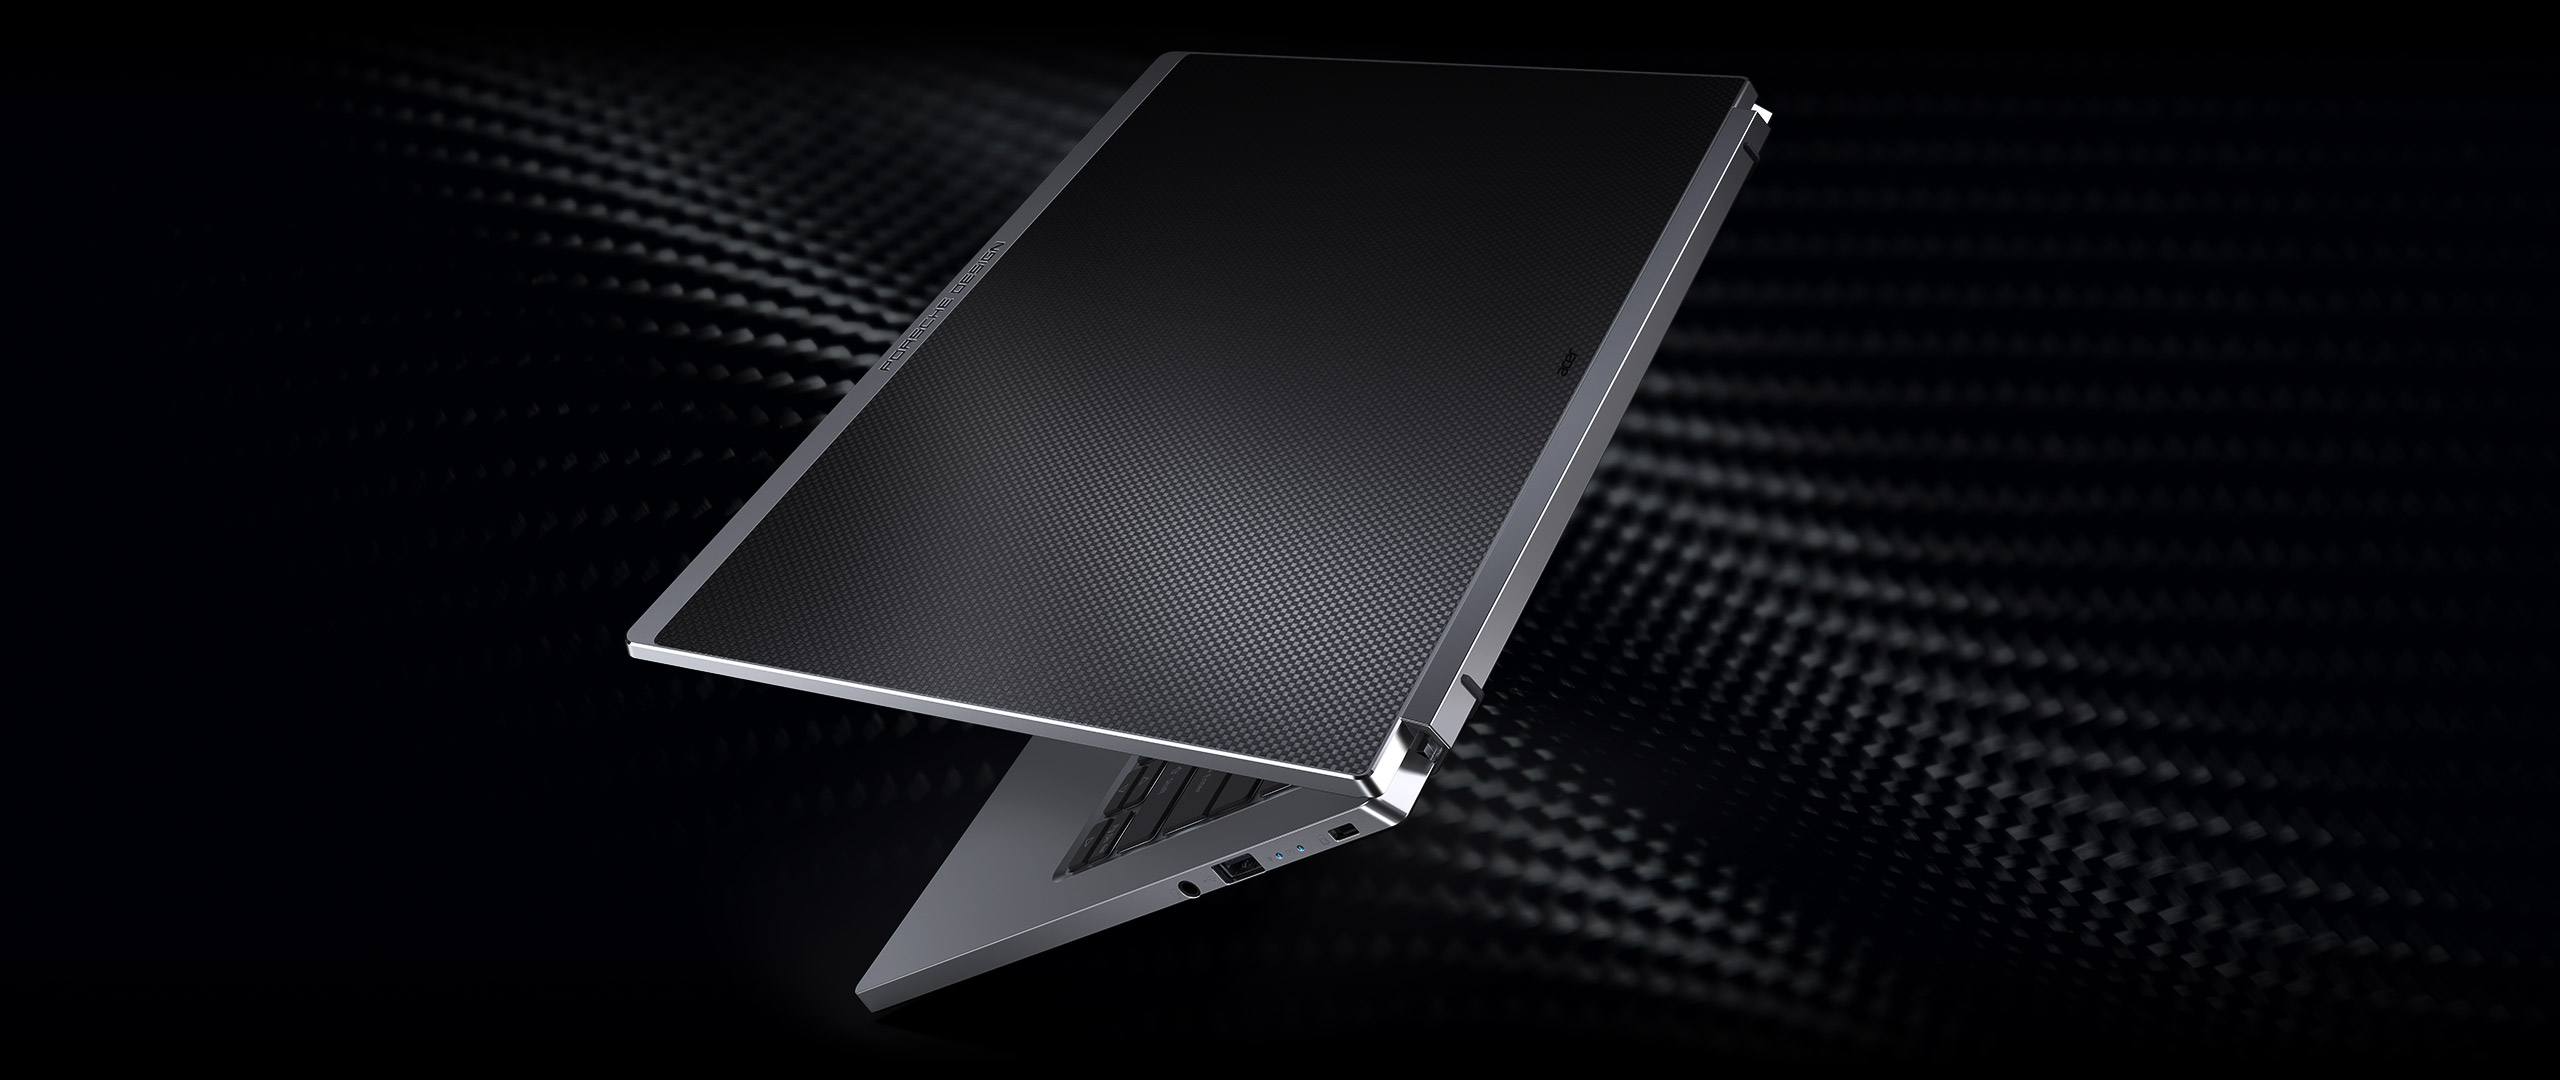 Porsche_Design_Acer_Book_RS_ksp_01